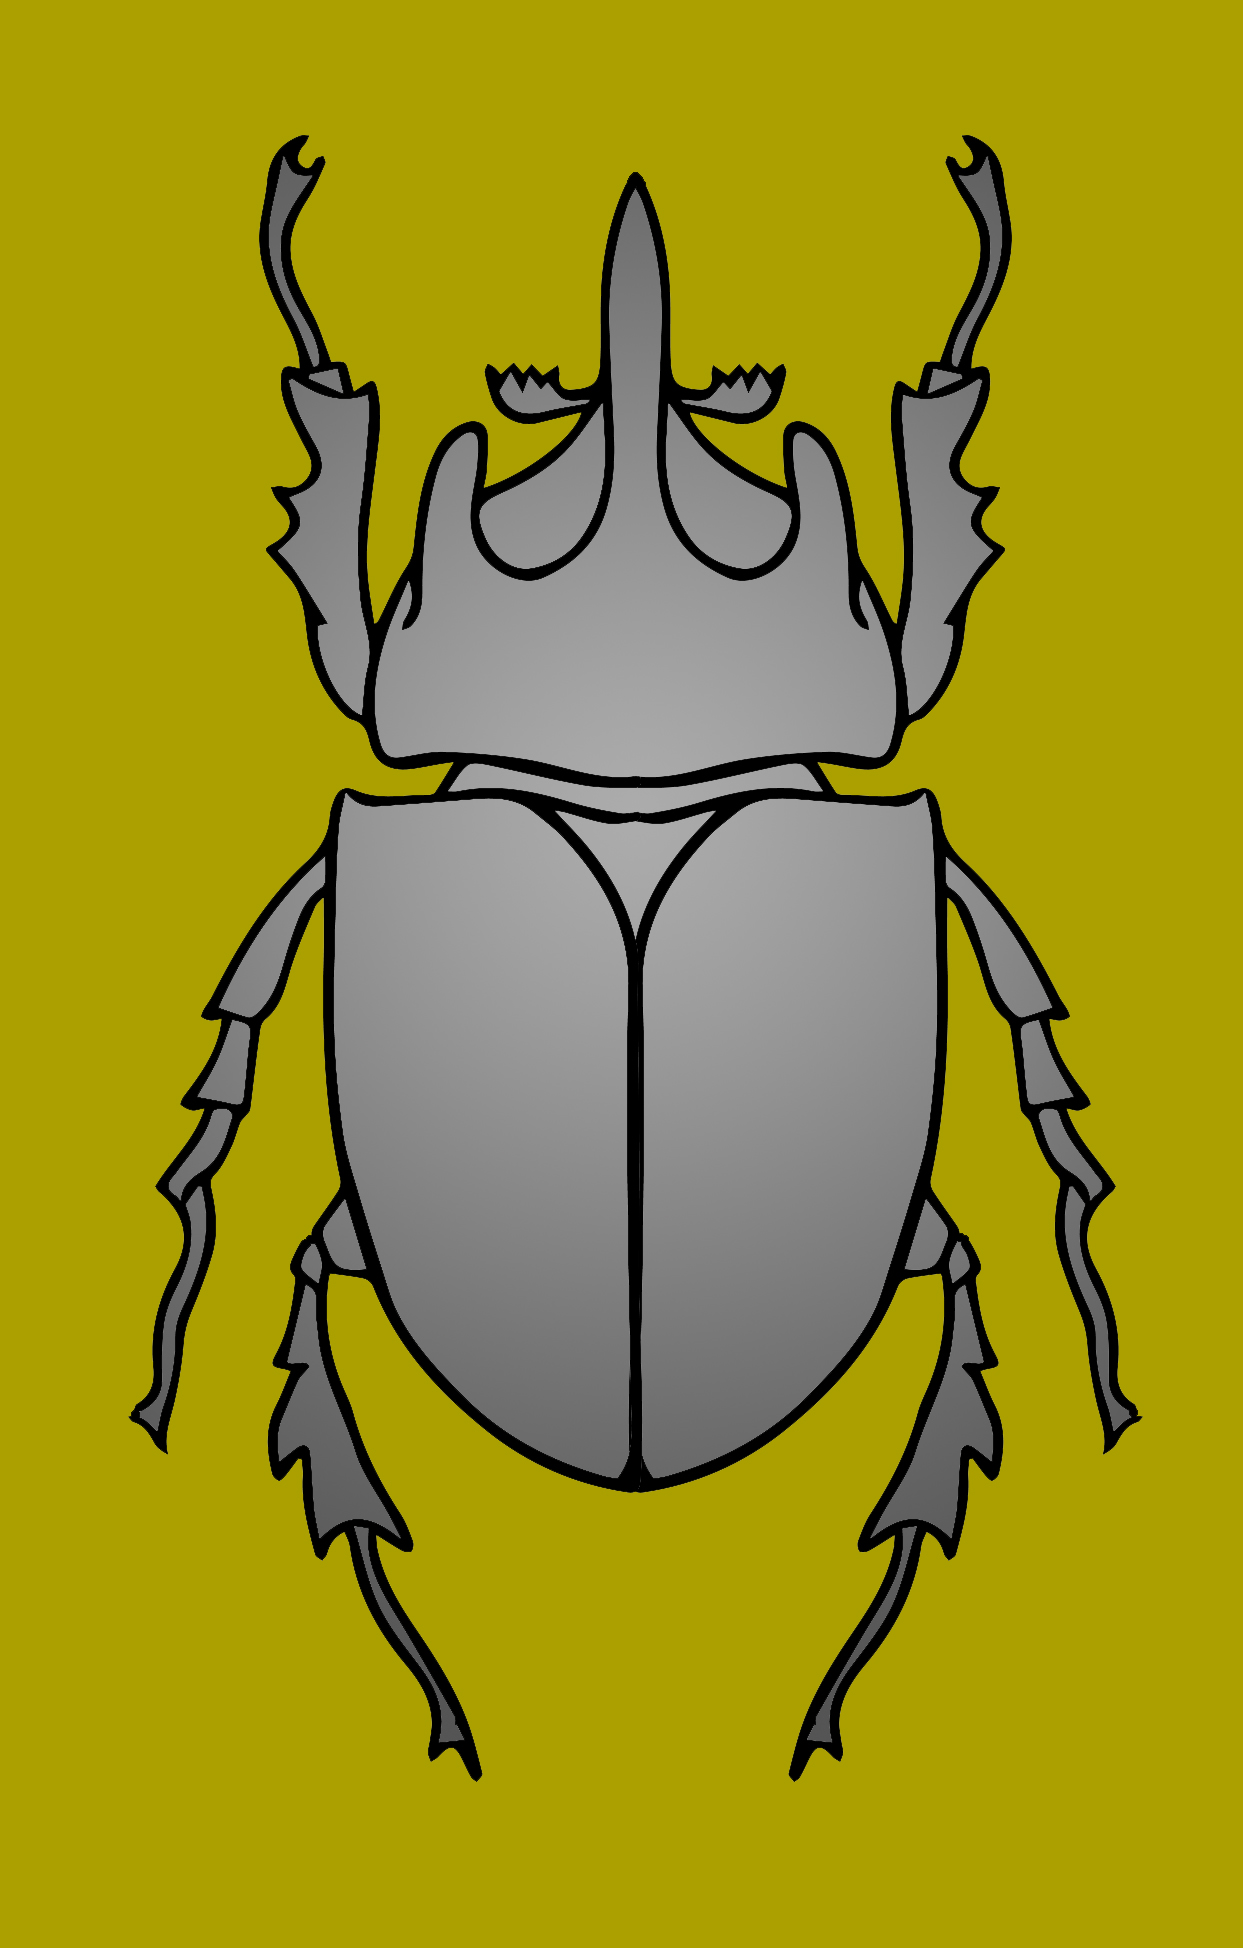 Beetle 11 - Ox - Color 1.jpg